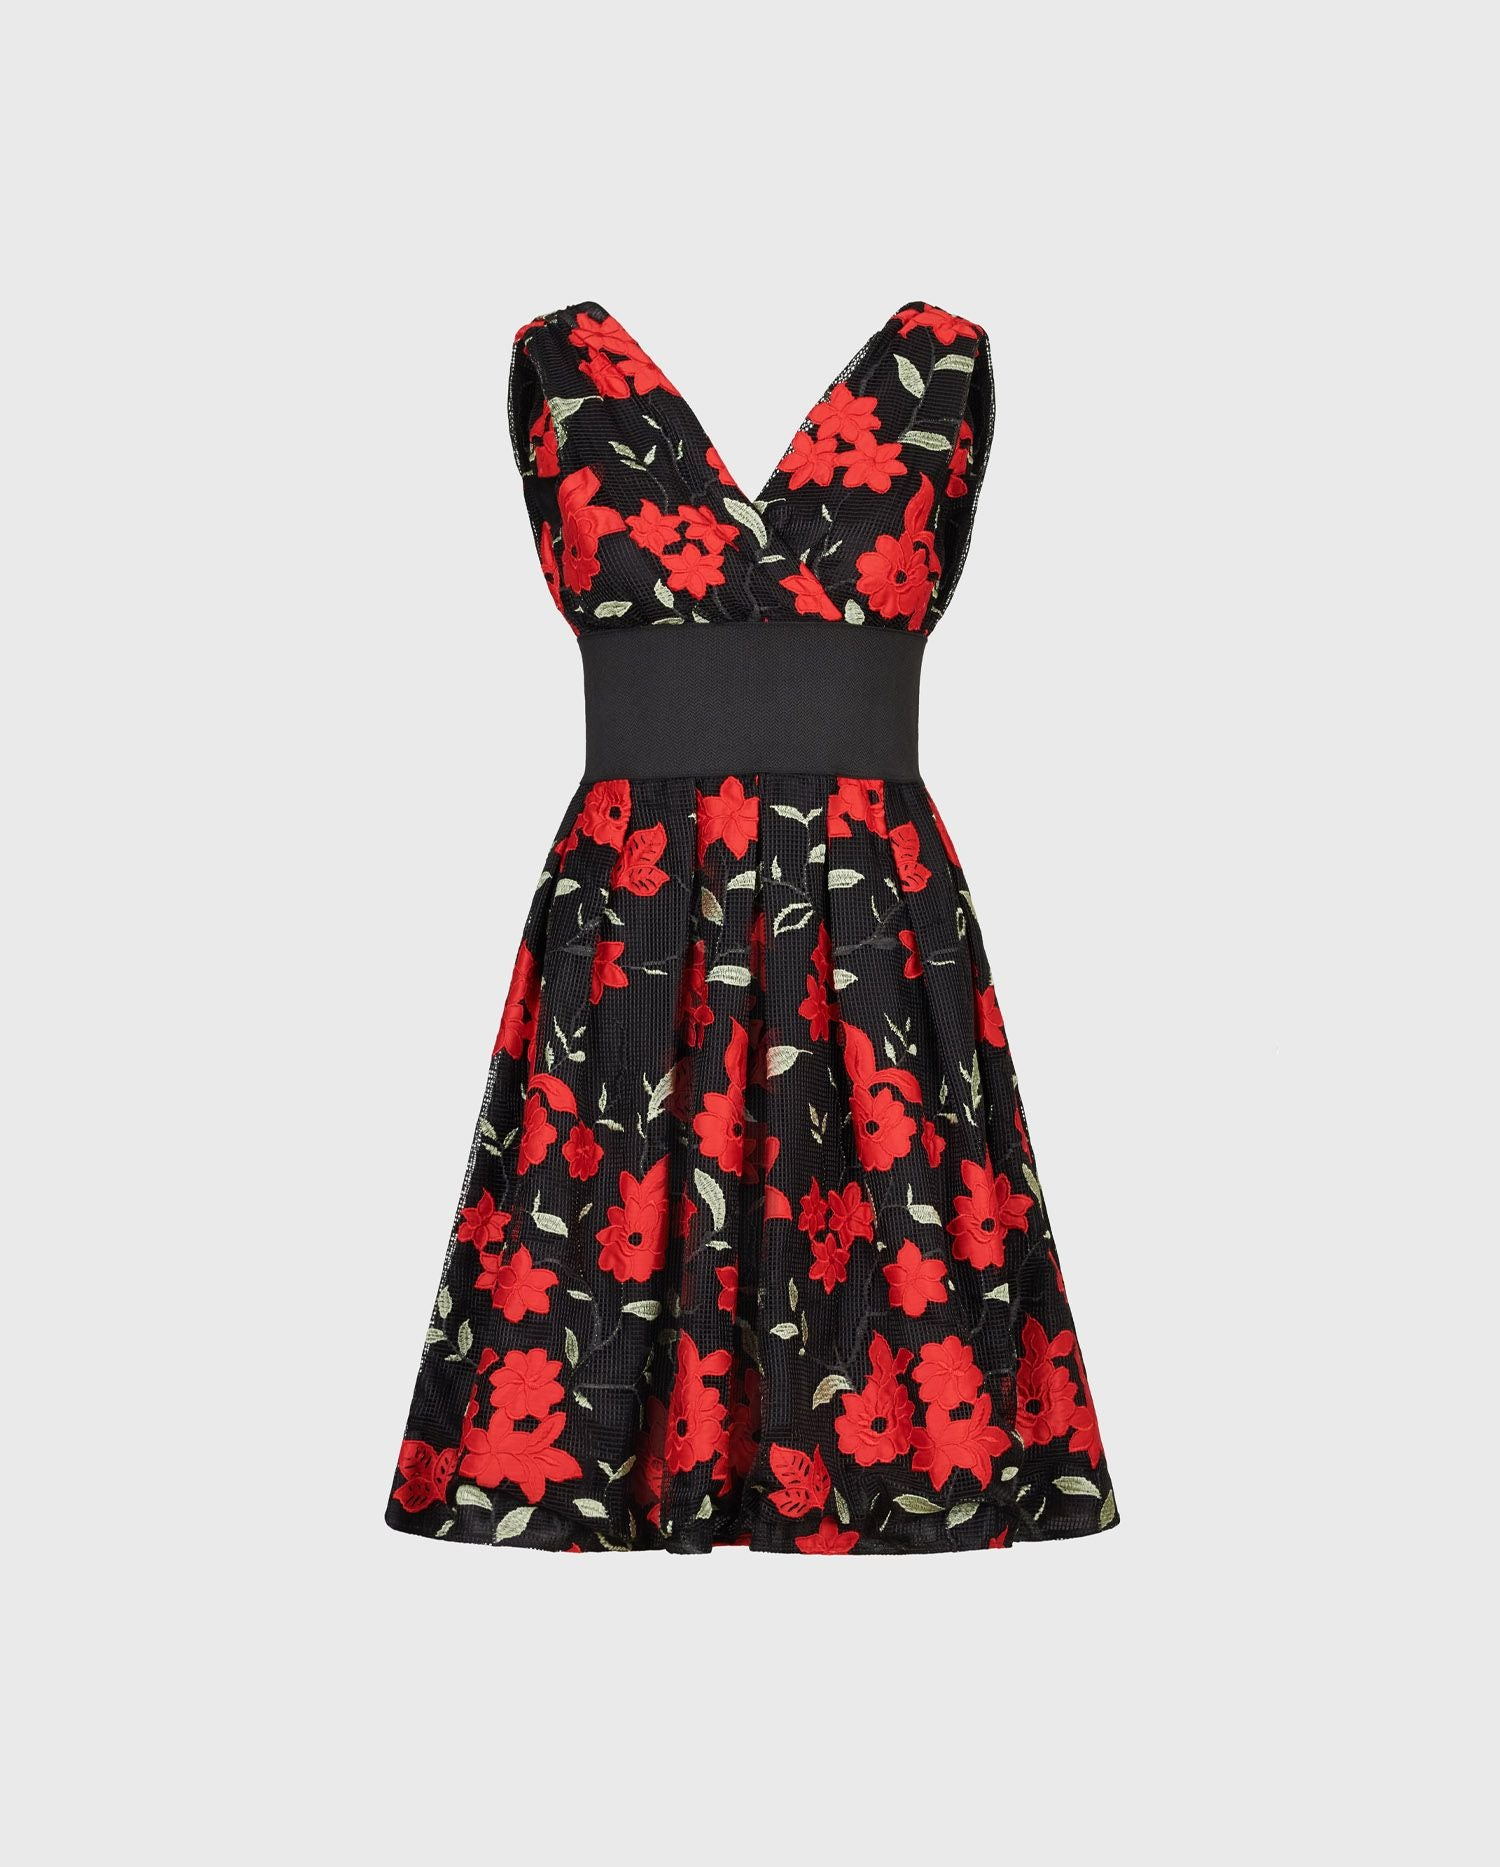 Transport yourself to the streets of Paris in the beautiful MATHILDA black and red floral A-Line dress.